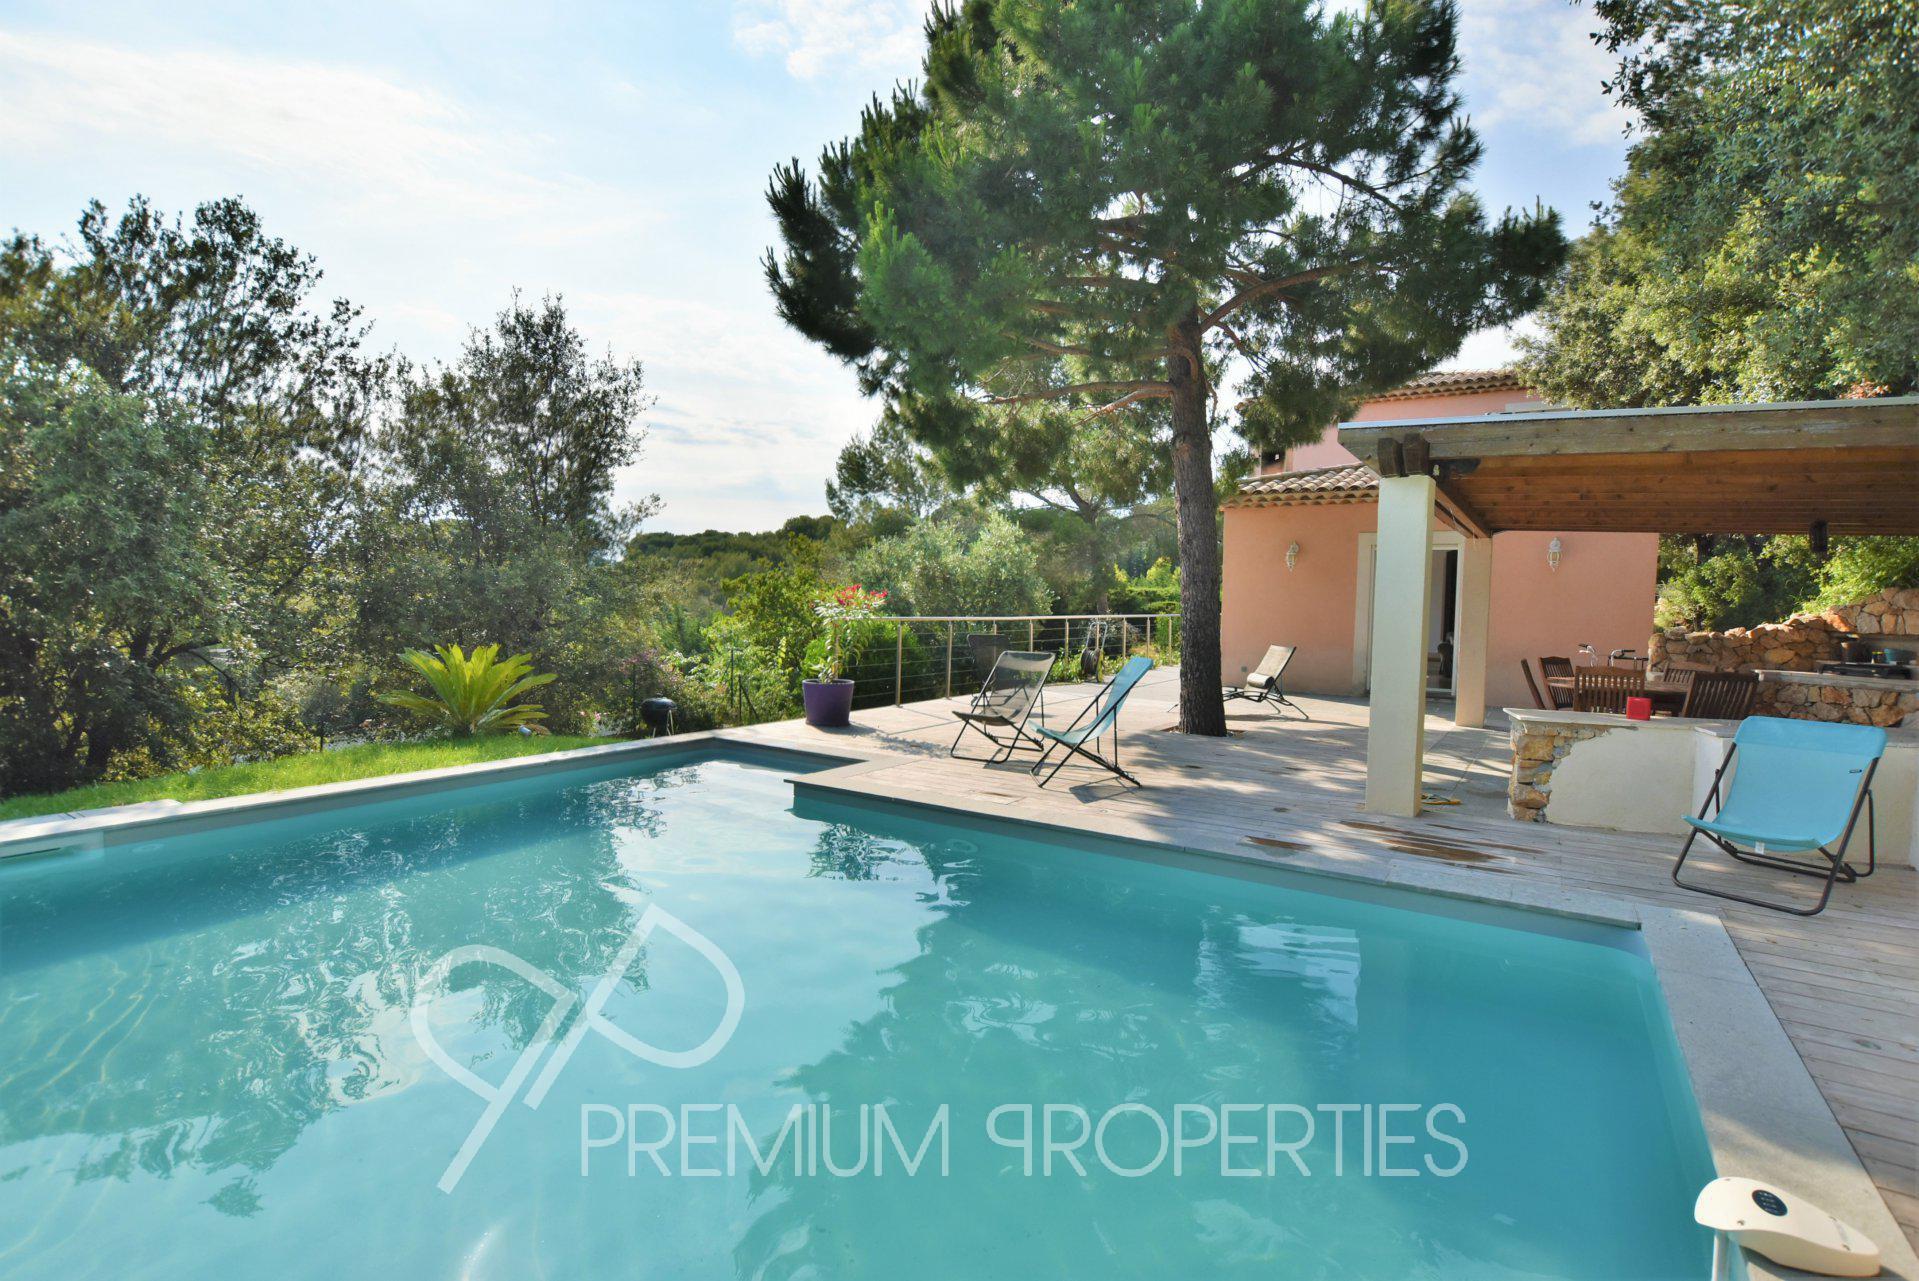 BIOT SOLE AGENT  - IDEAL FOR FAMILIES